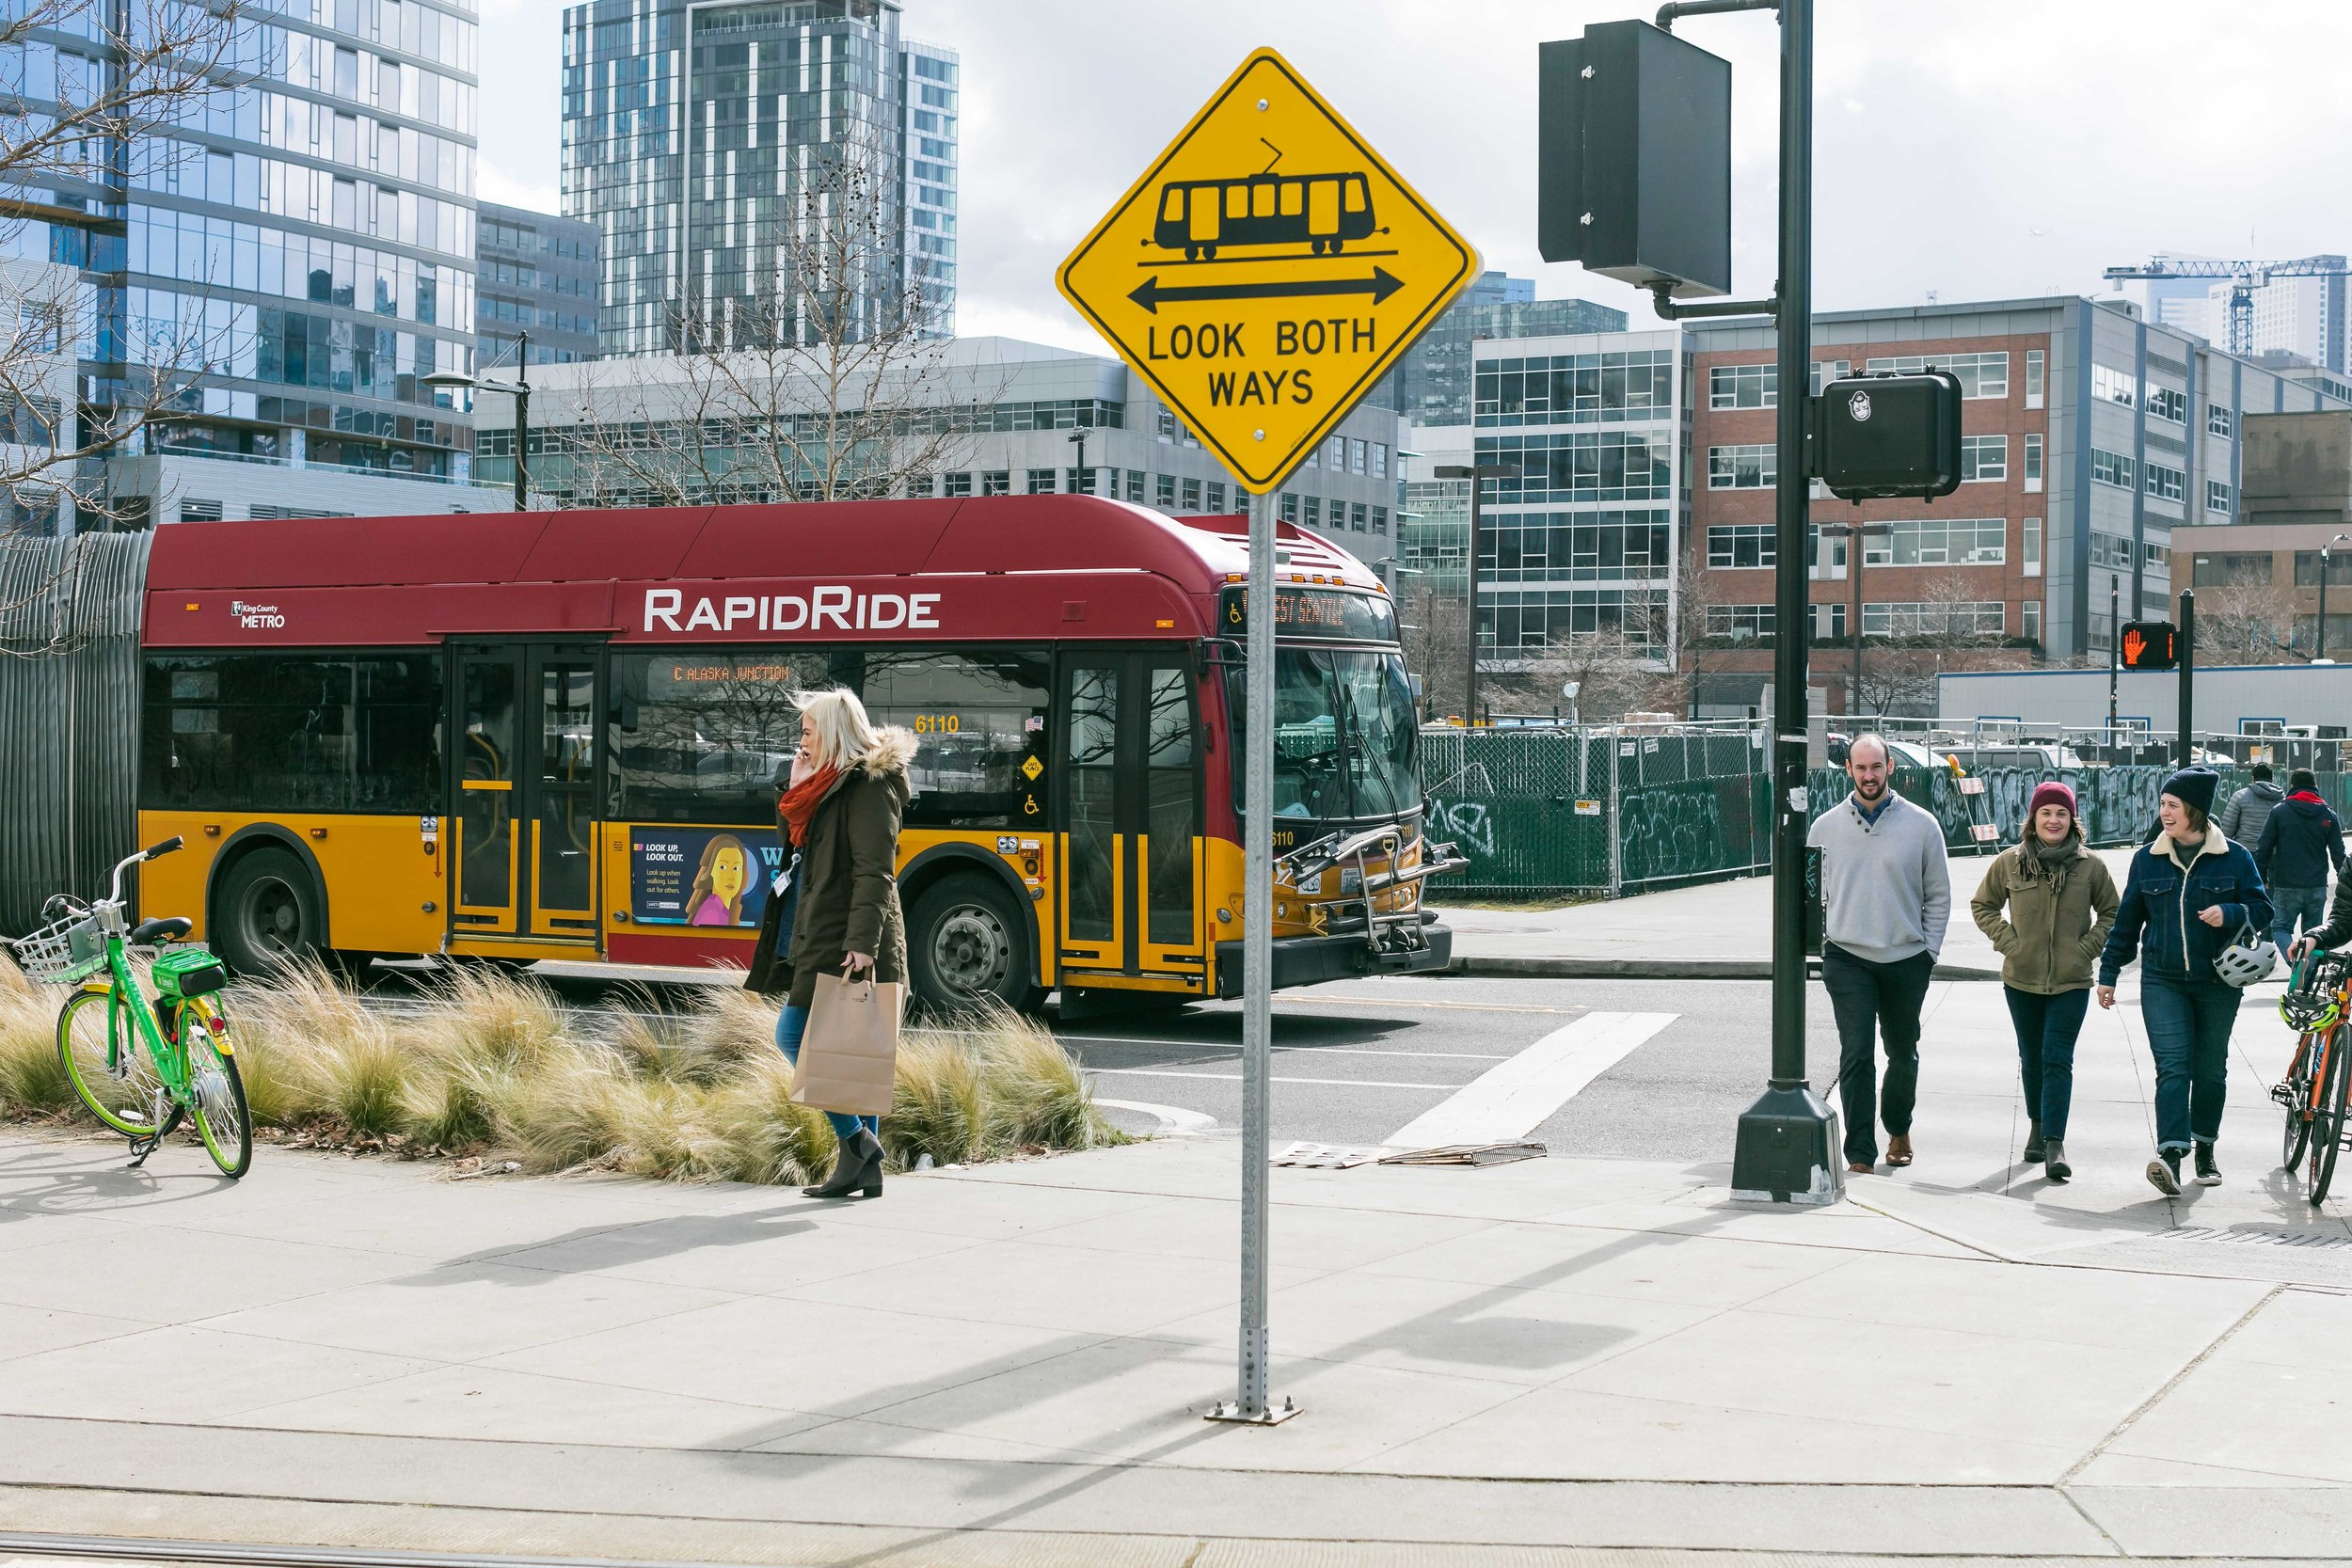 Getting Around - South Lake Union has the transportation options to take you where you want to go.